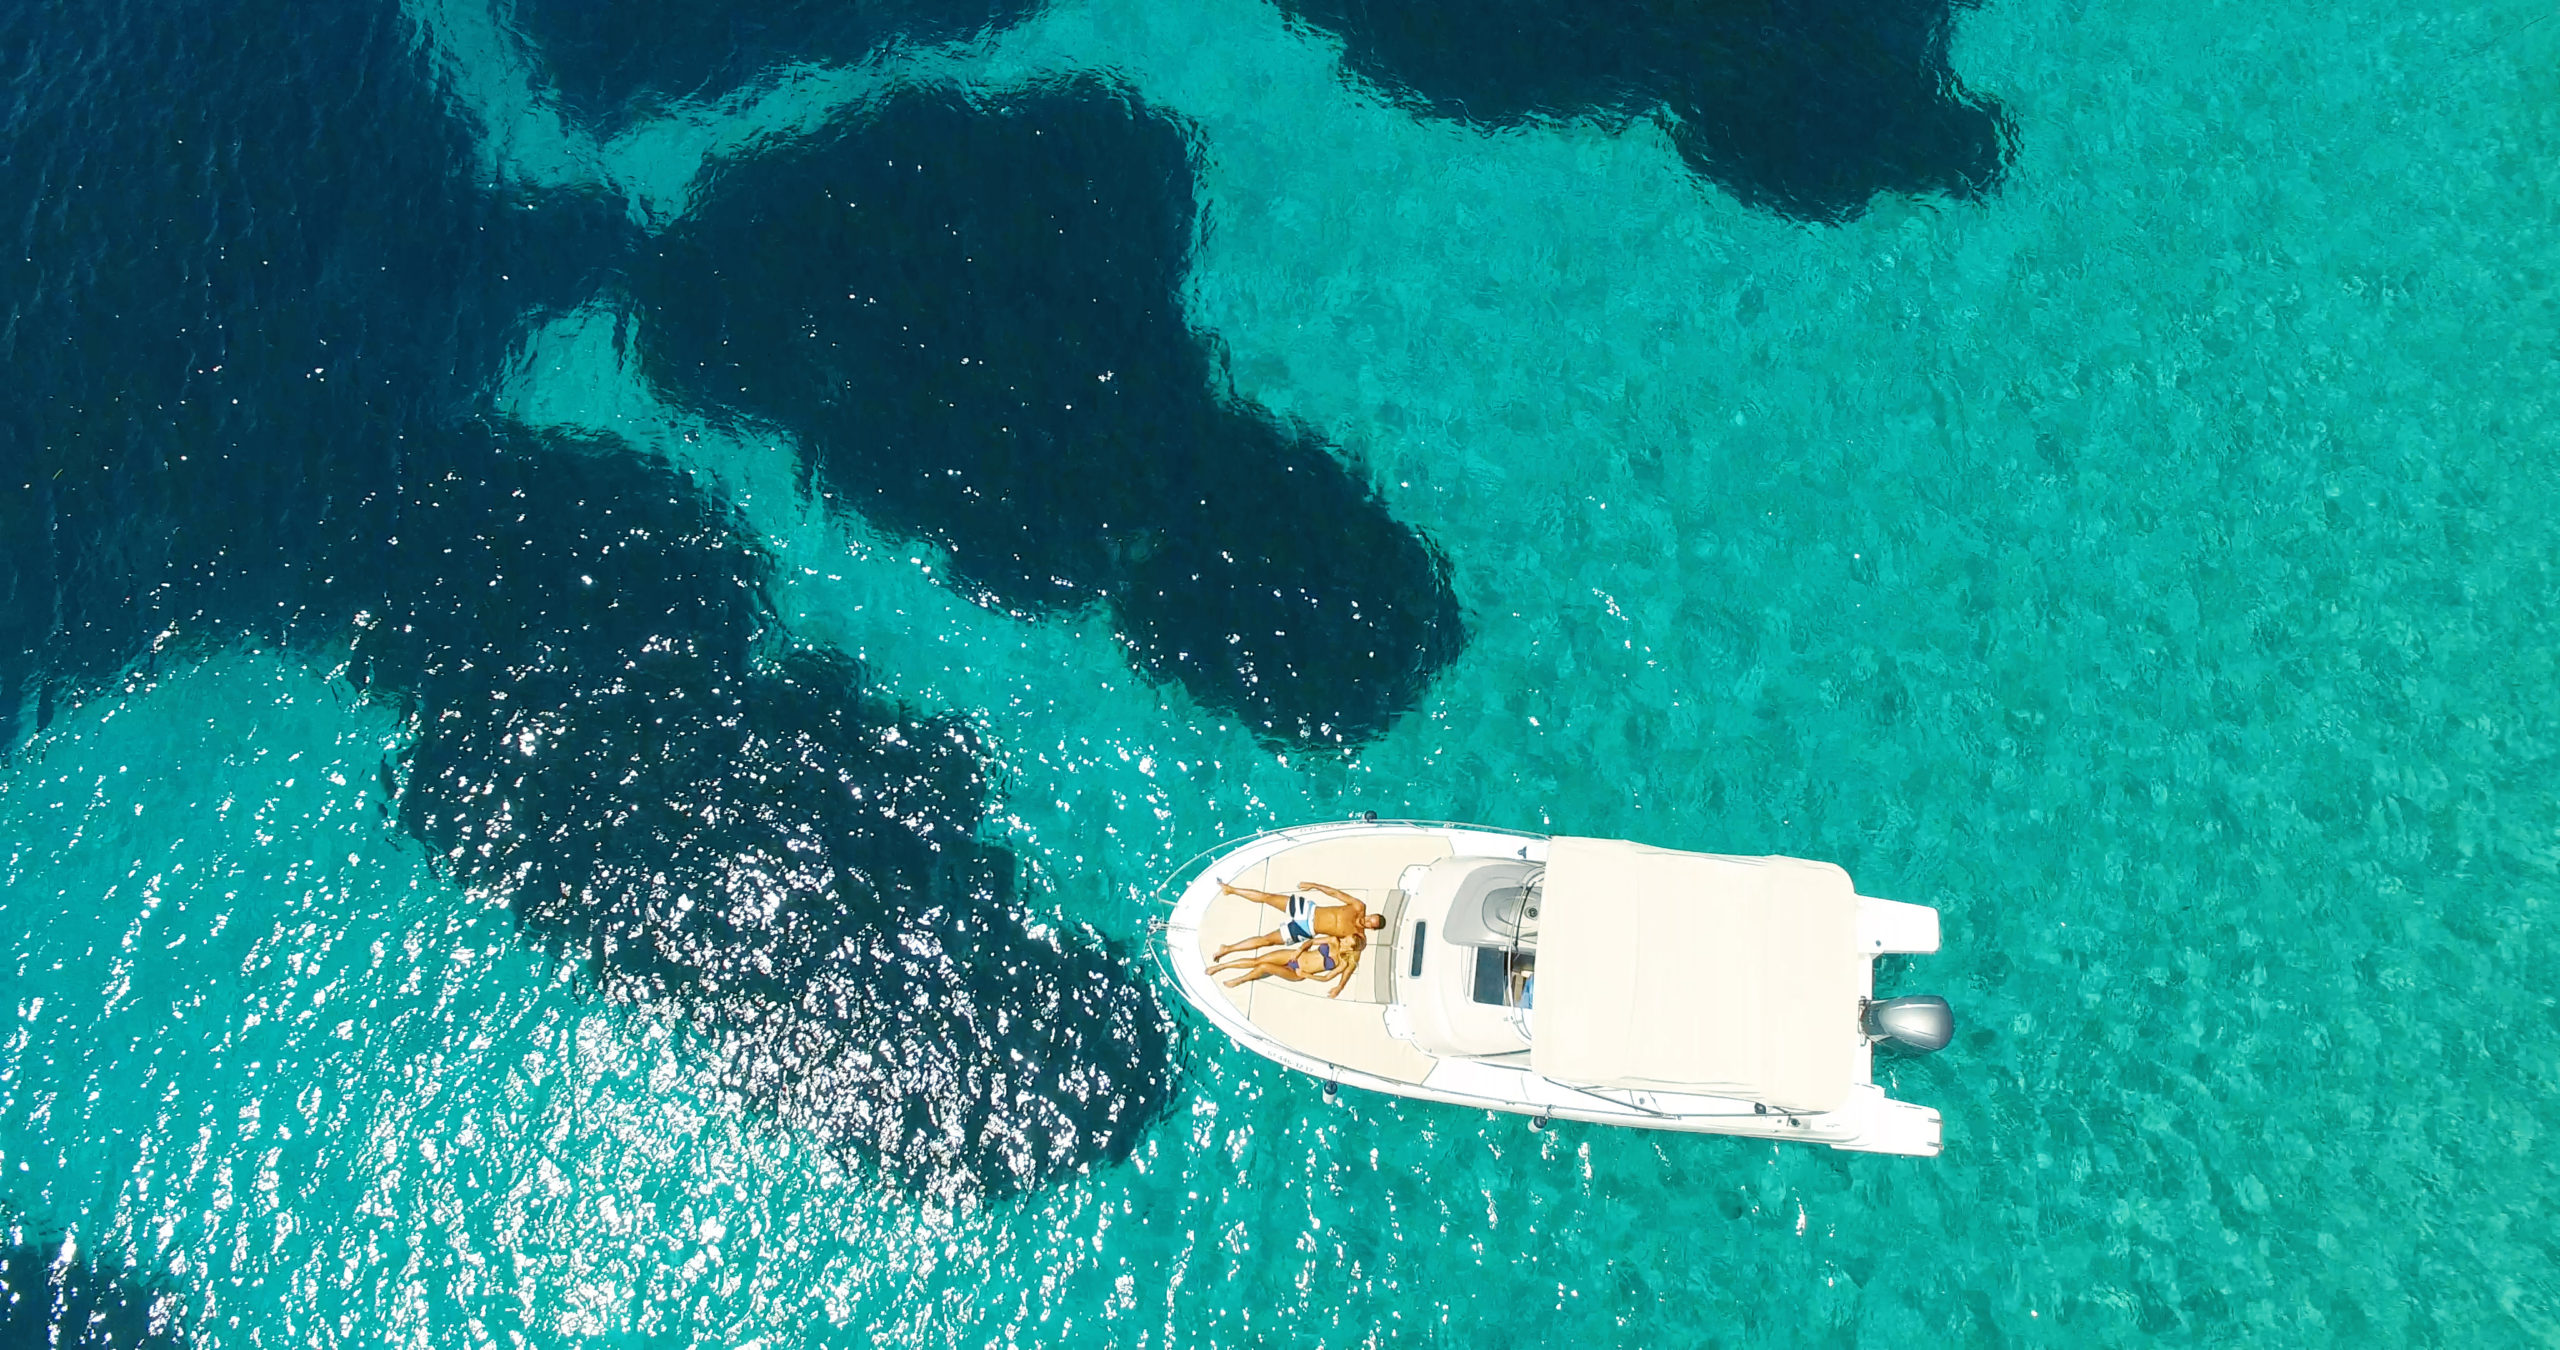 Aerial view of a couple on a yact in the middle of the sea